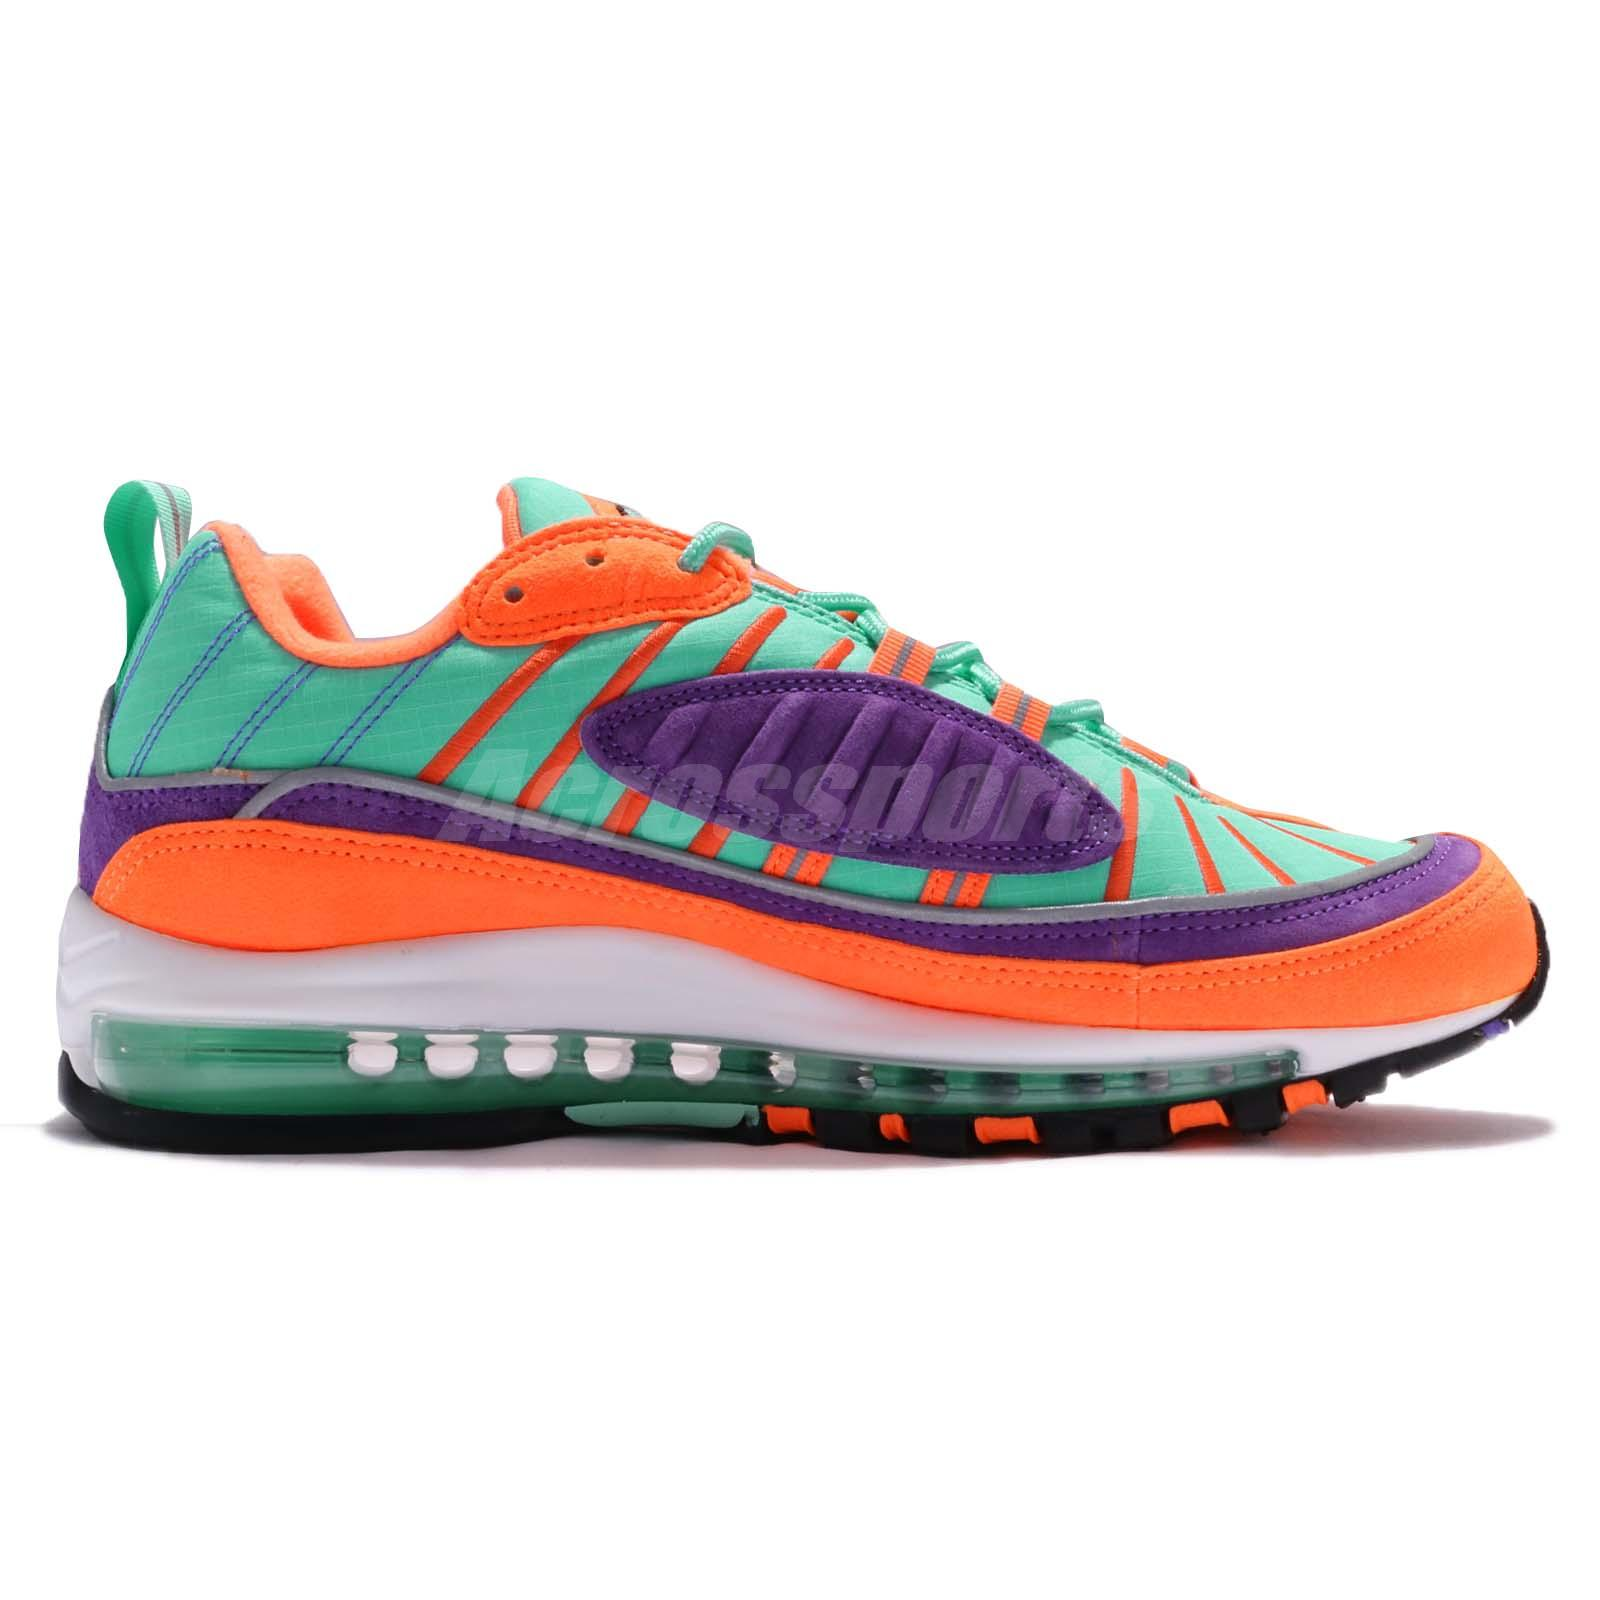 1795a9e029d2 Nike Air Max 98 QS Cone Vibrant Air Tour Yellow Grape Men Limited ...